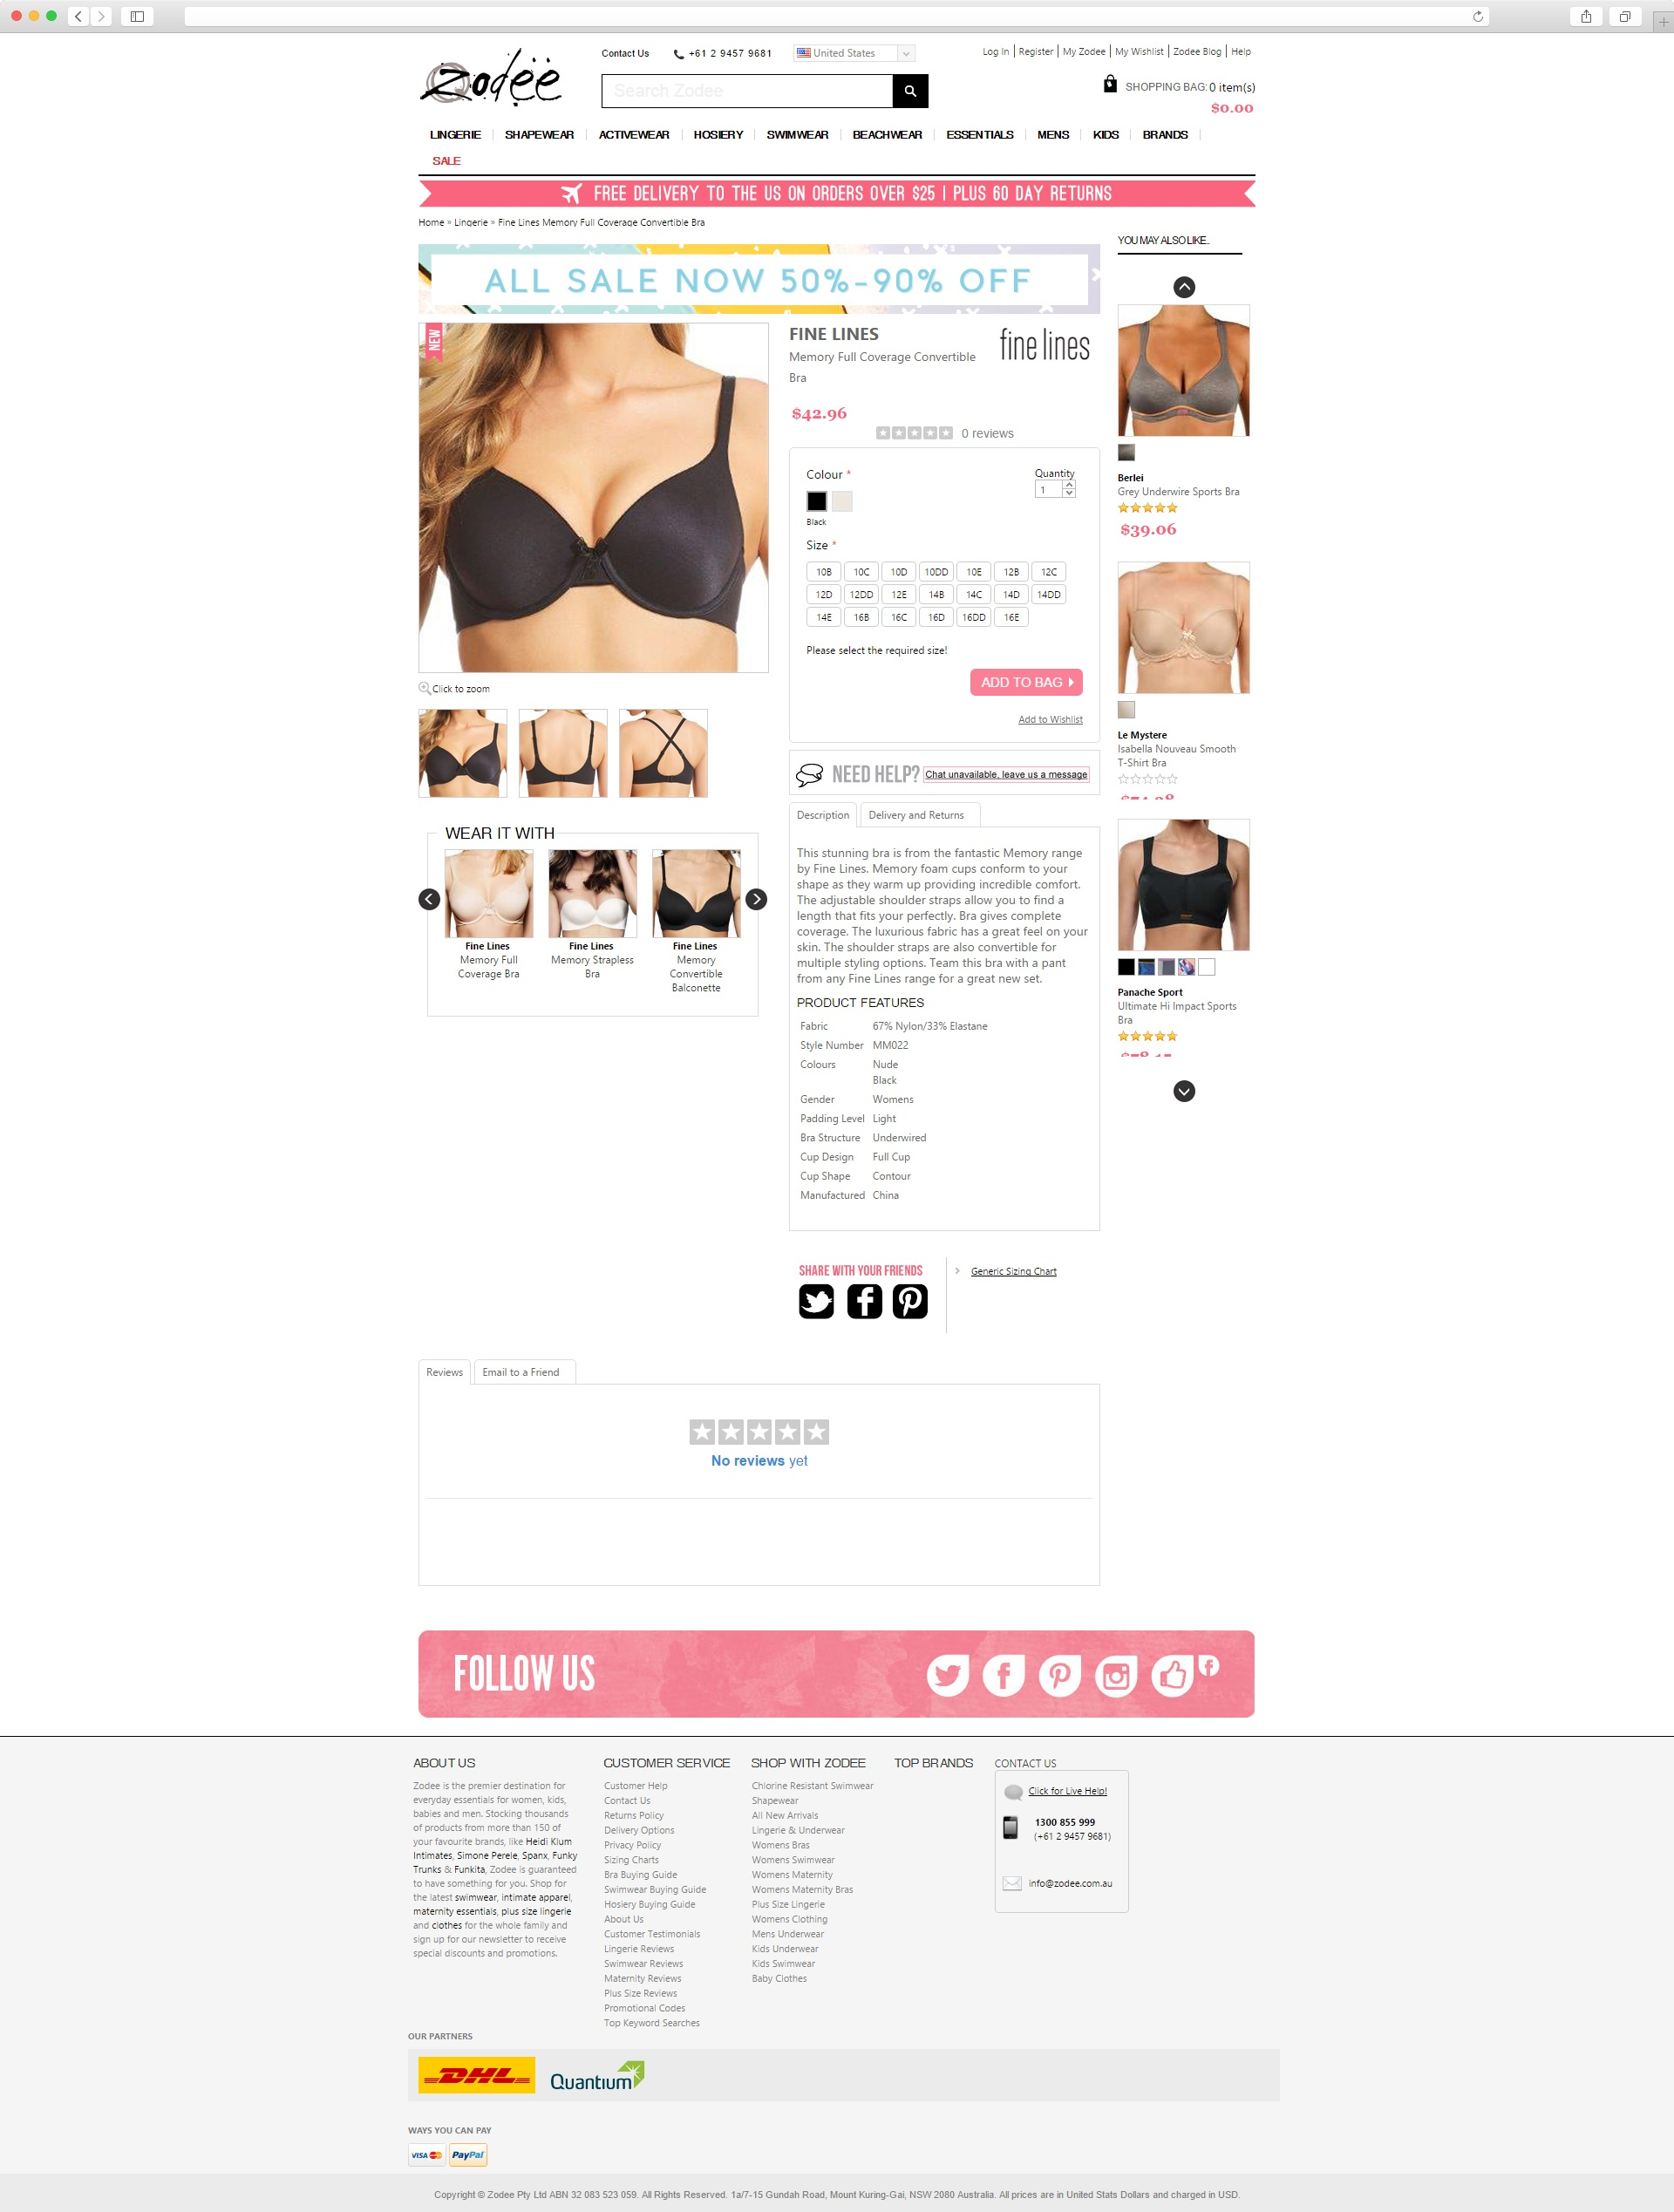 Our Works: Zodee.com